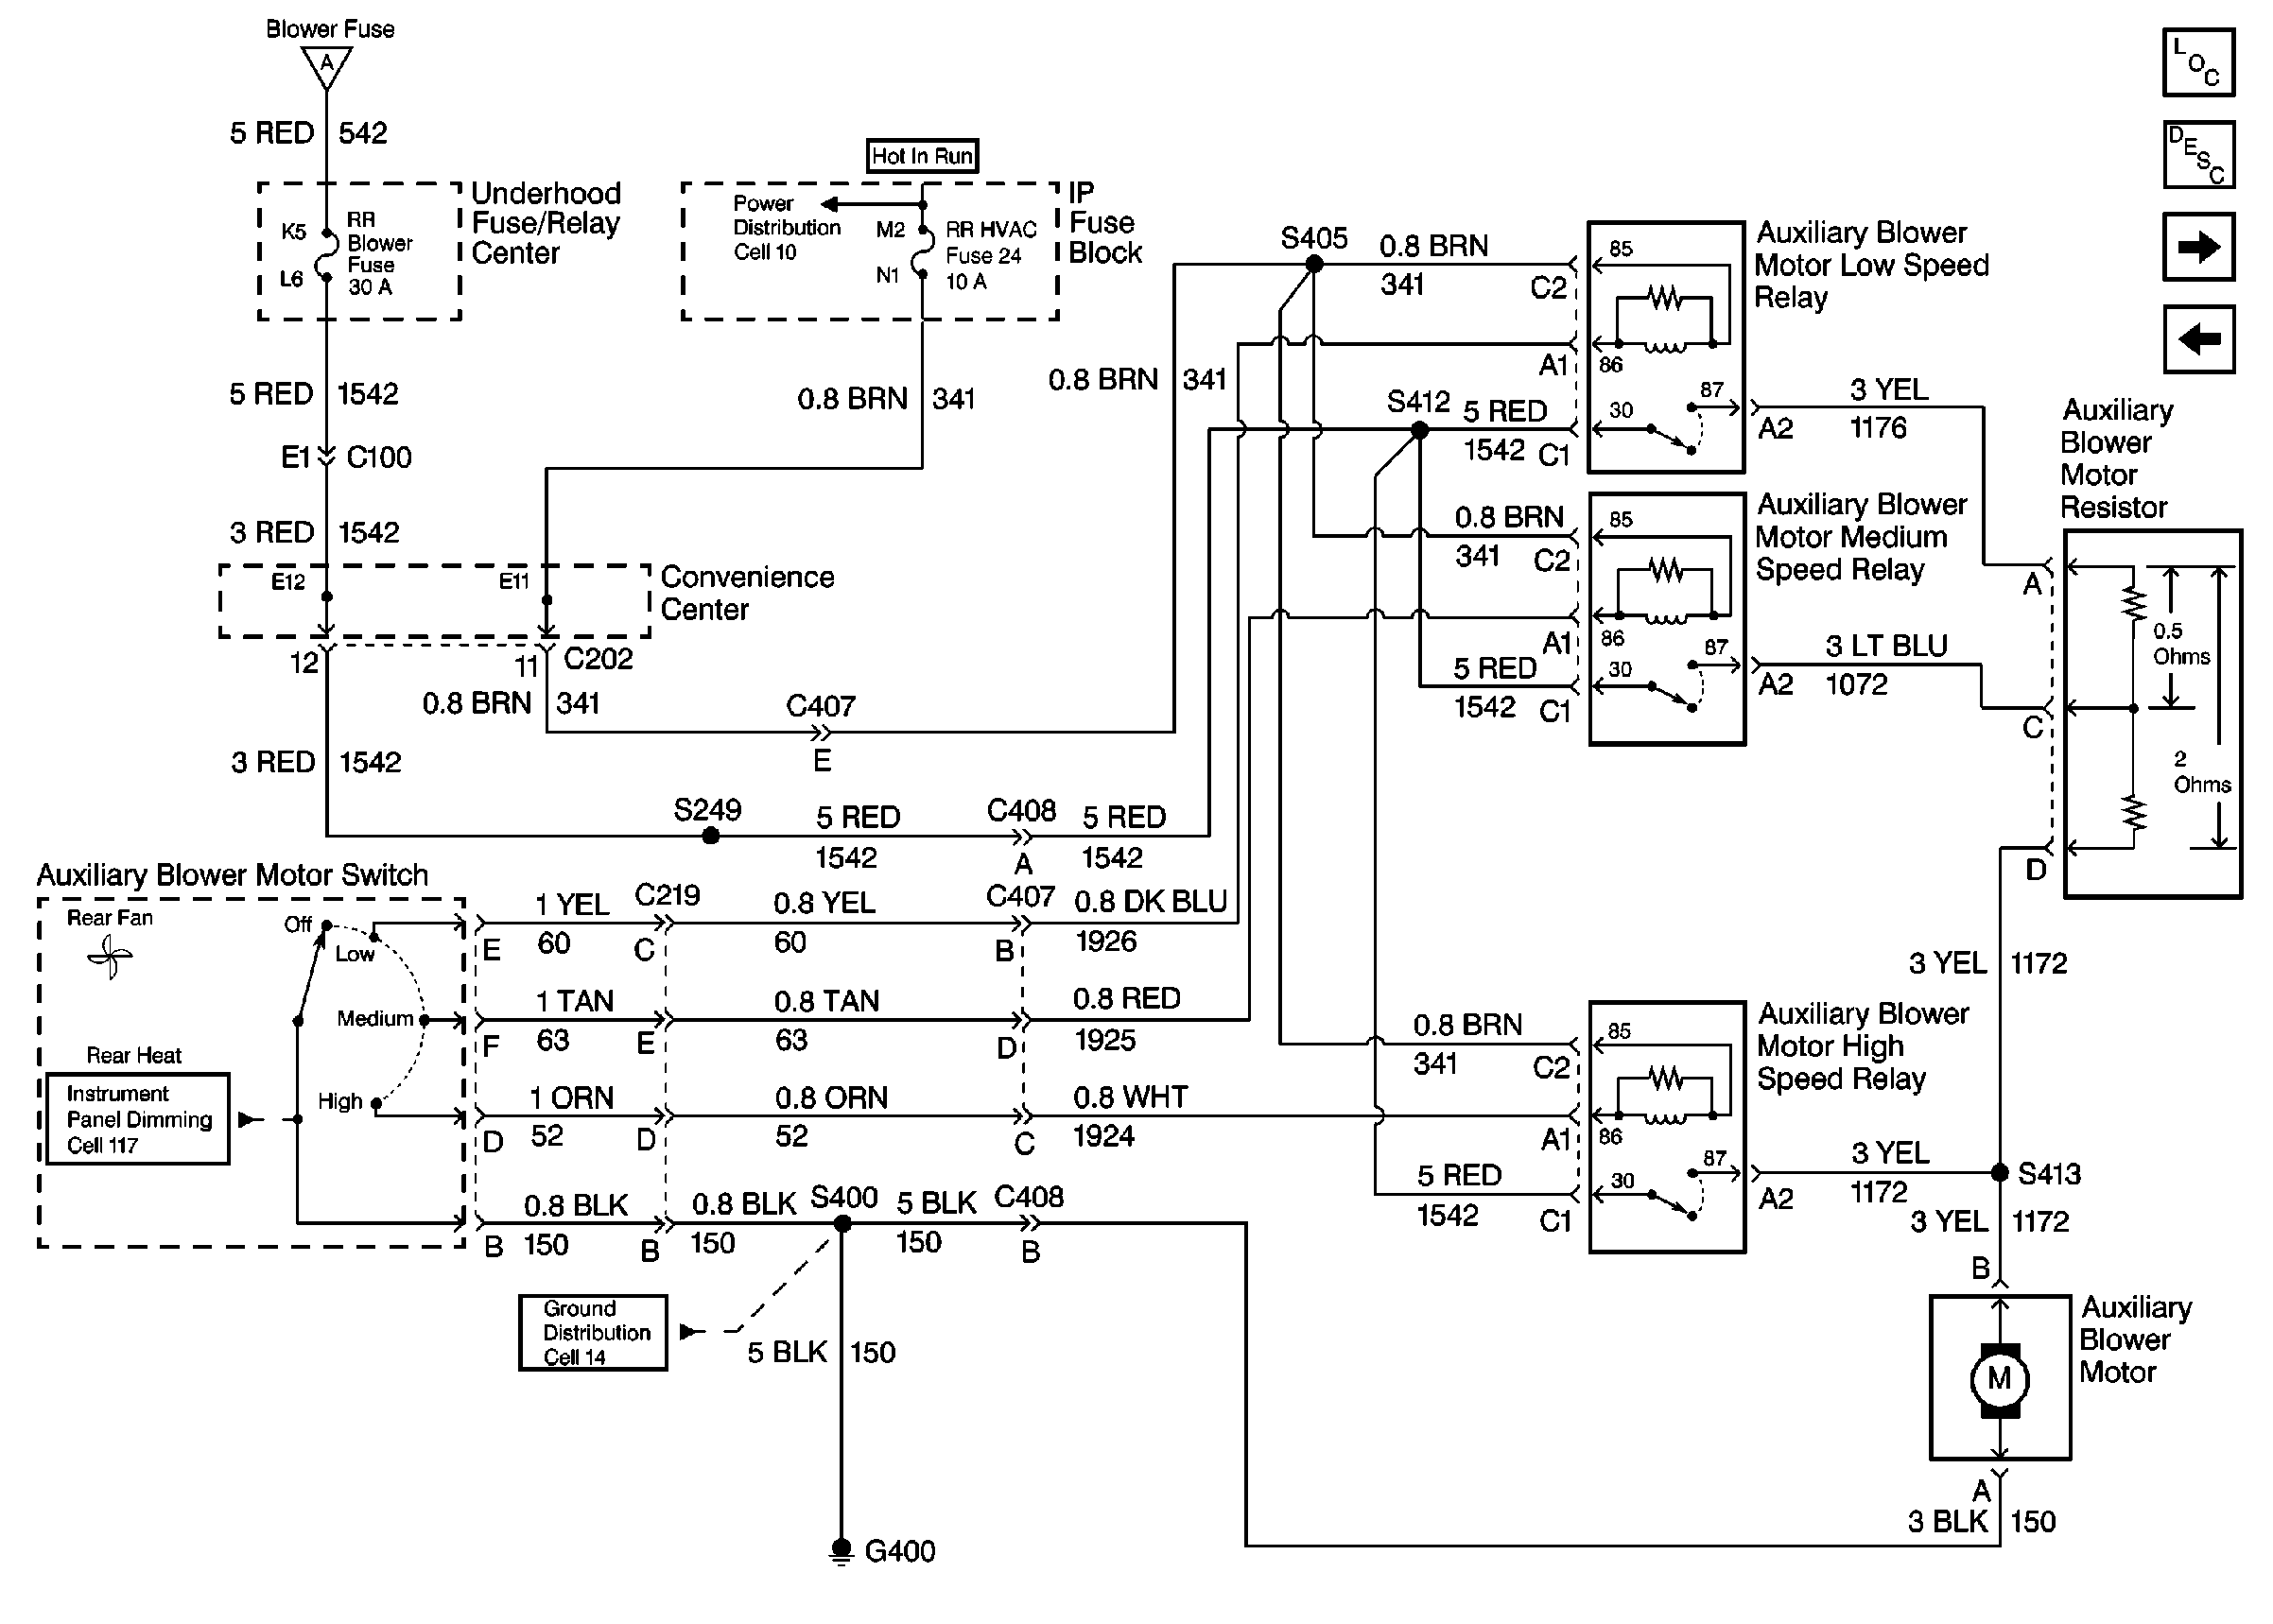 chevy express 3500 wiring diagram fuse sswNSNp monte carlo ke switch wiring diagram wiring diagram simonand Chevy Fuel Pump Troubleshooting at gsmx.co